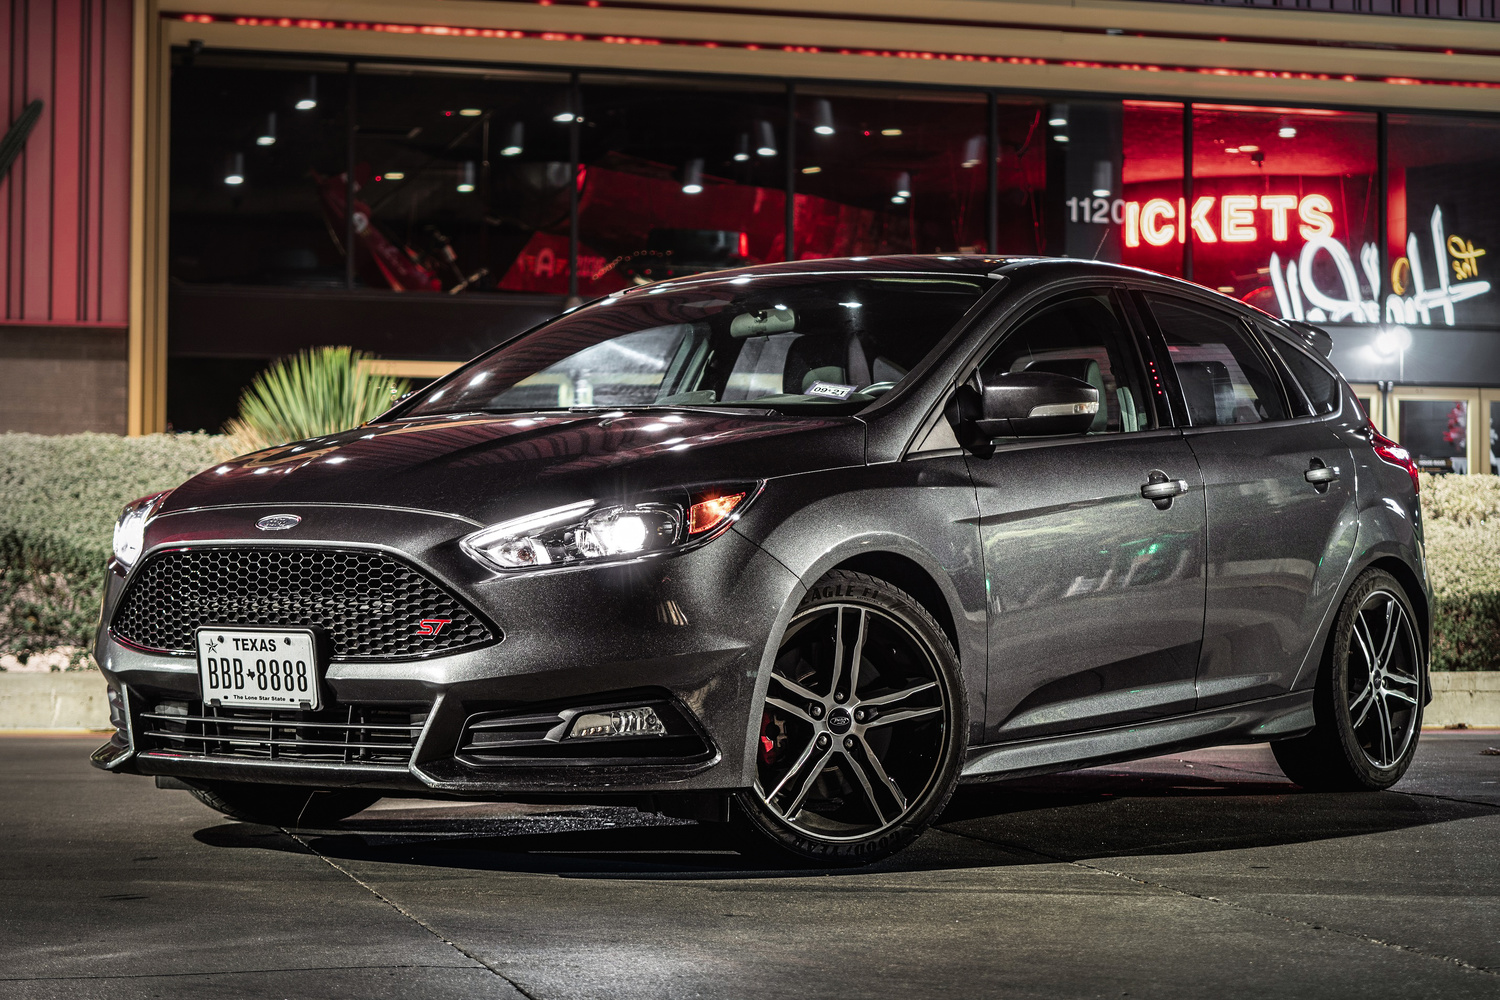 Ford Focus ST in Downtown Austin by Justin Lauria